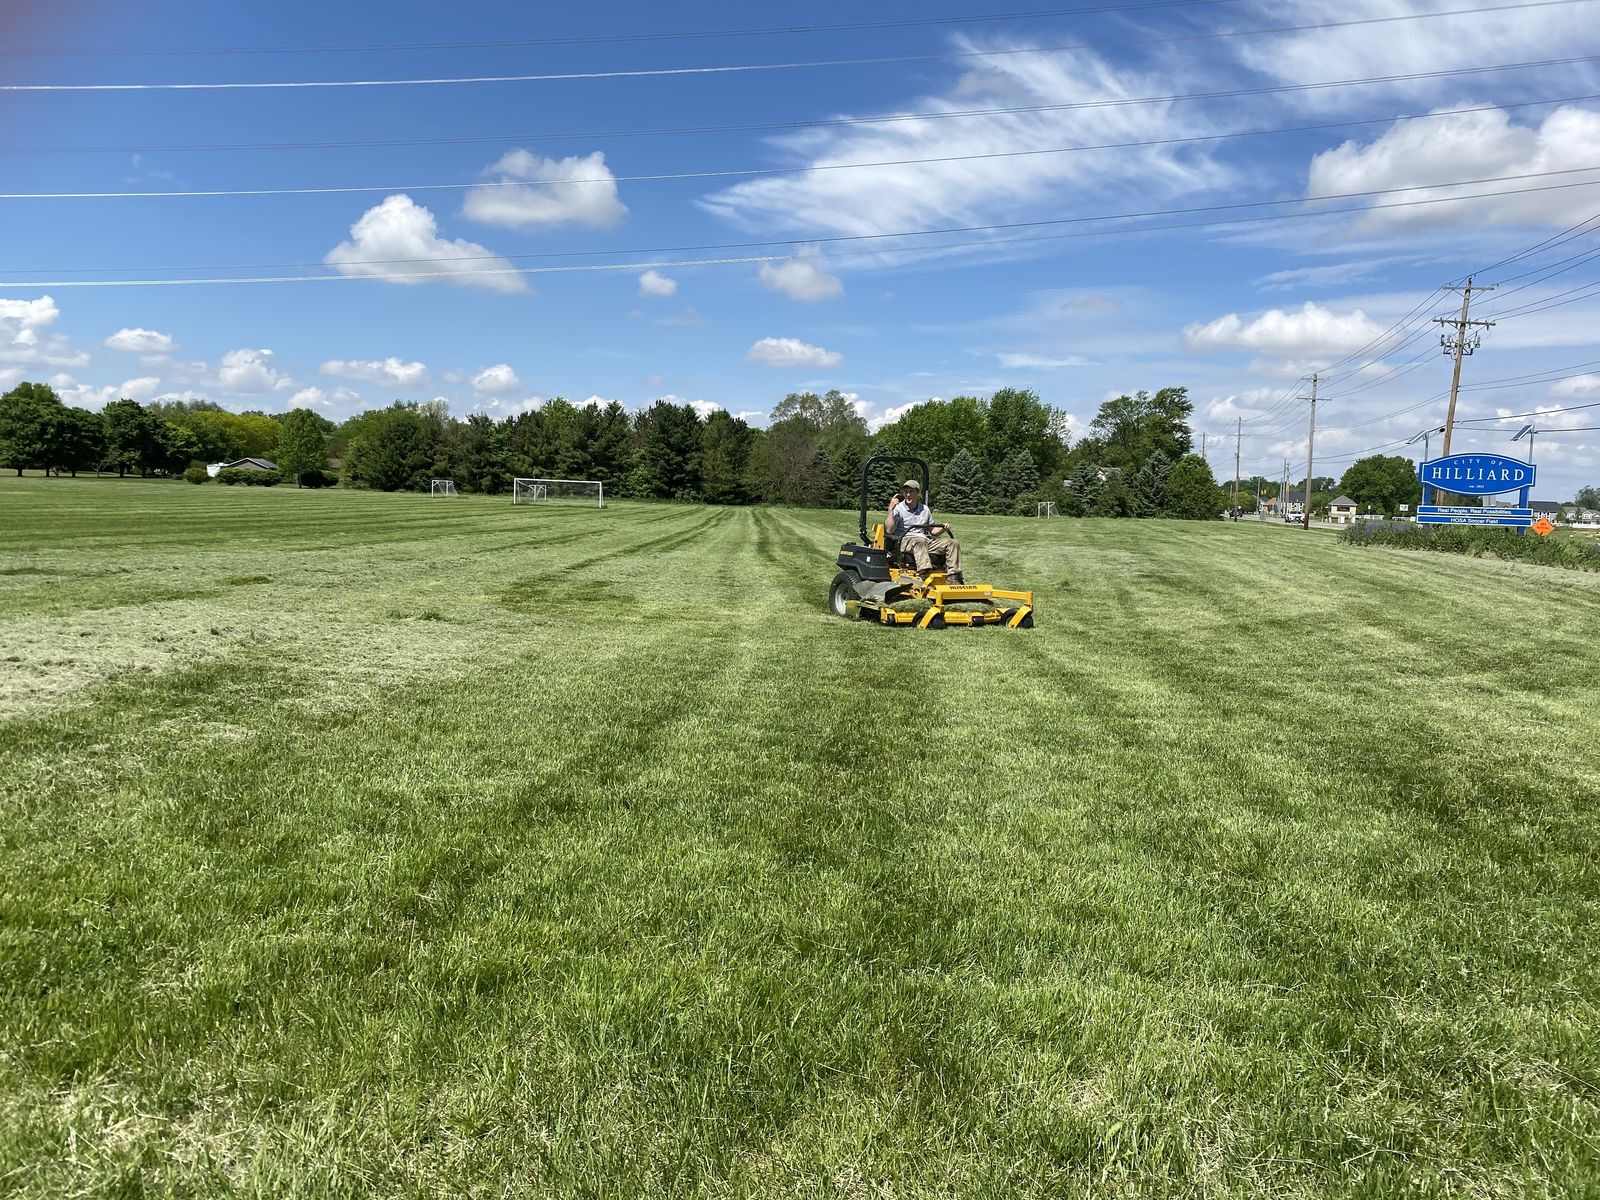 Diamonds and soccer fields have been not been in use for the last few months so cities are now scrambling to get them in shape. (WSYX/WTTE)